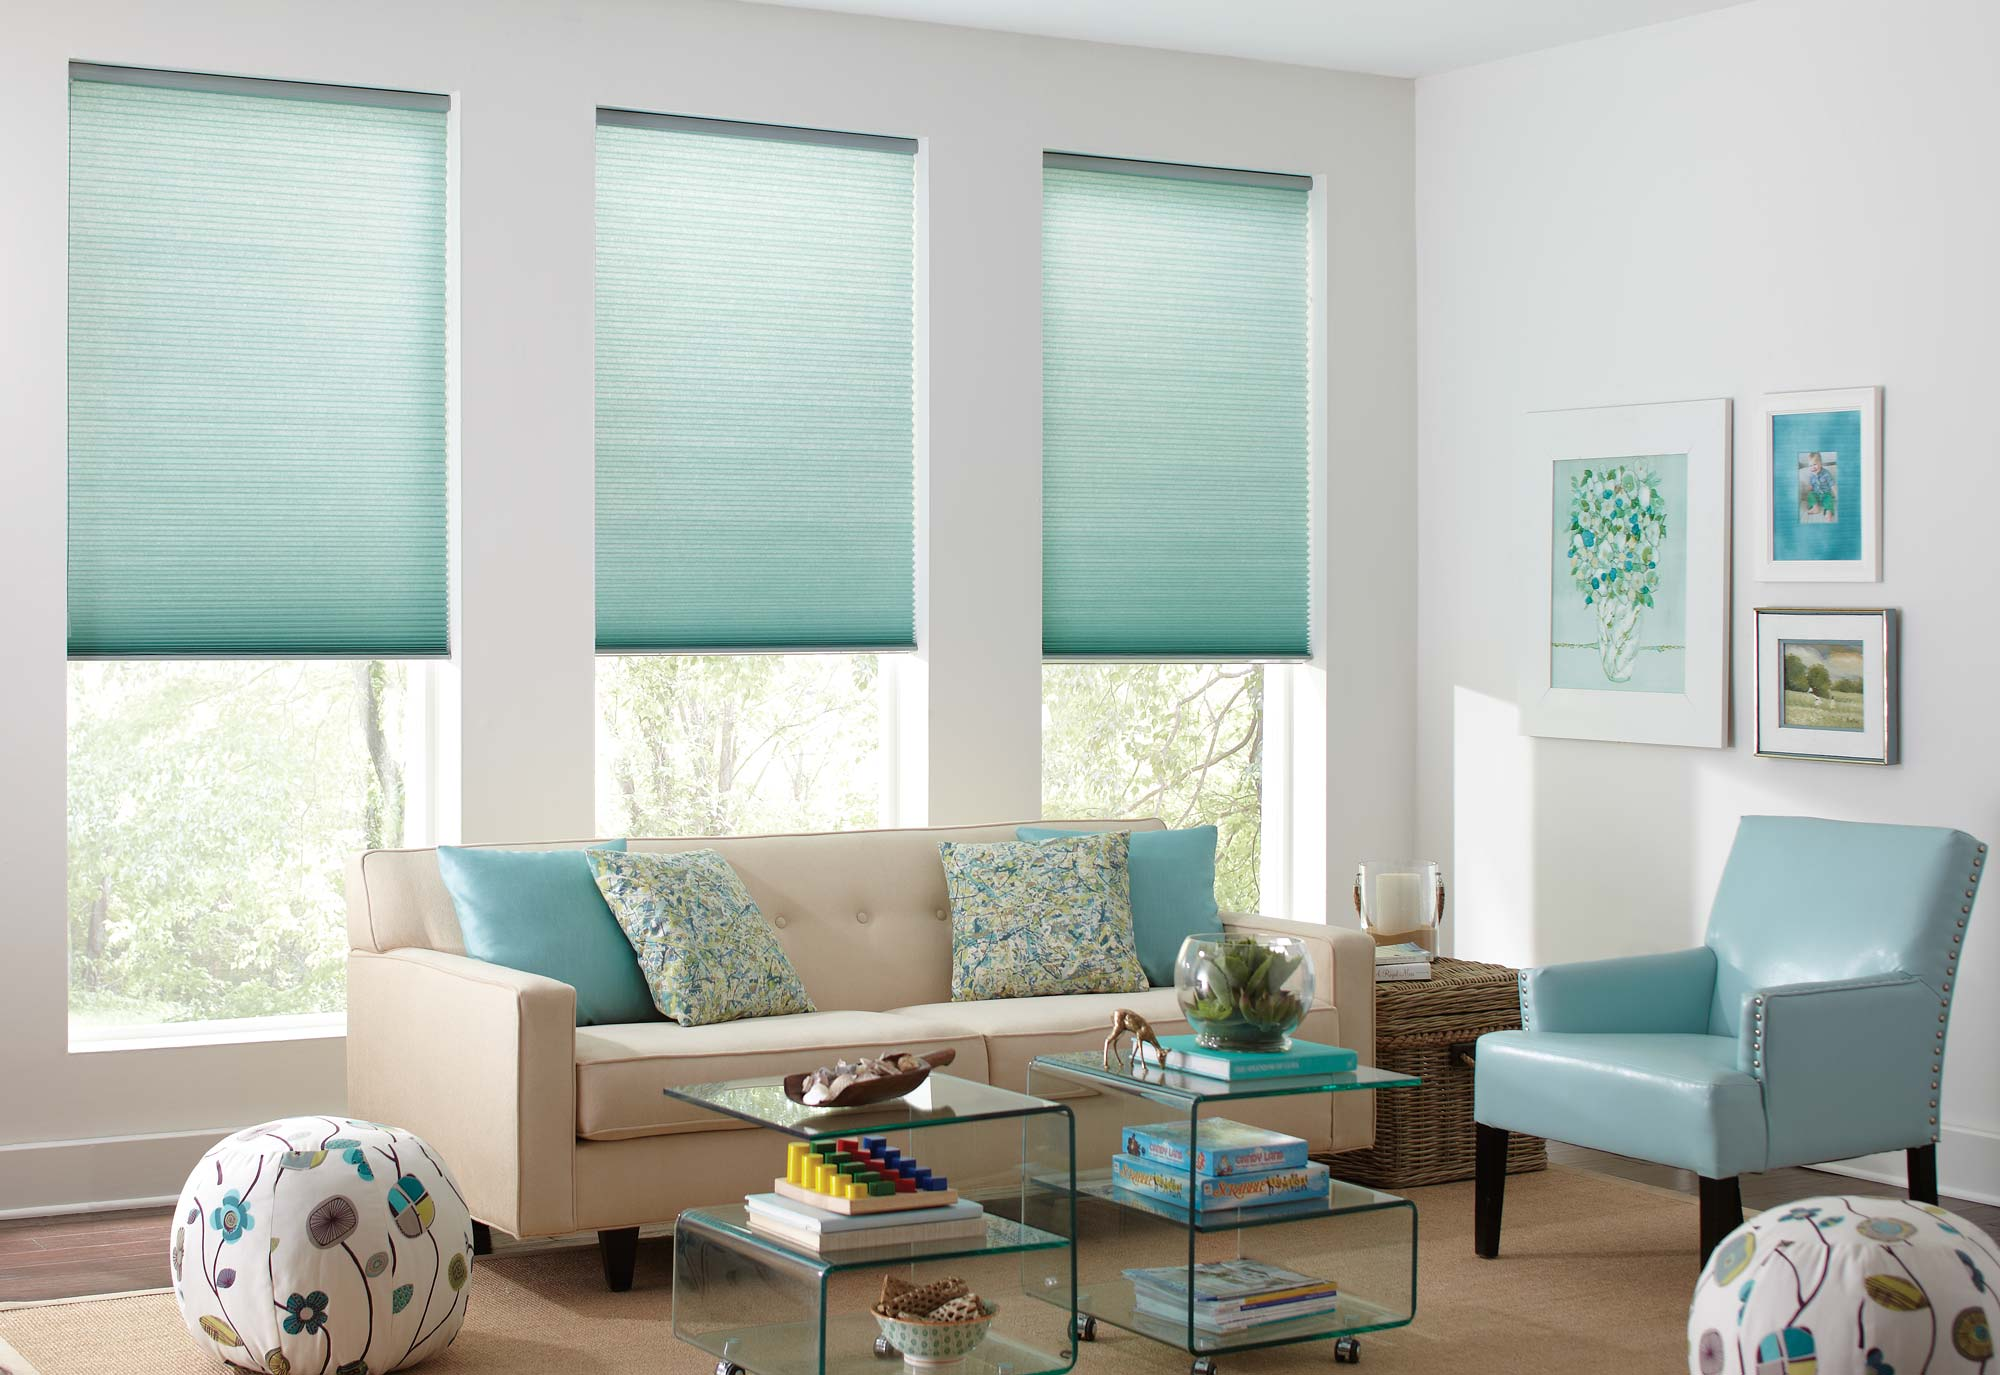 Three aqua colored Parasol® Cellular Shades hang in the windows of a bright family room with custom blue and patterned pillows on a modern cream couch.